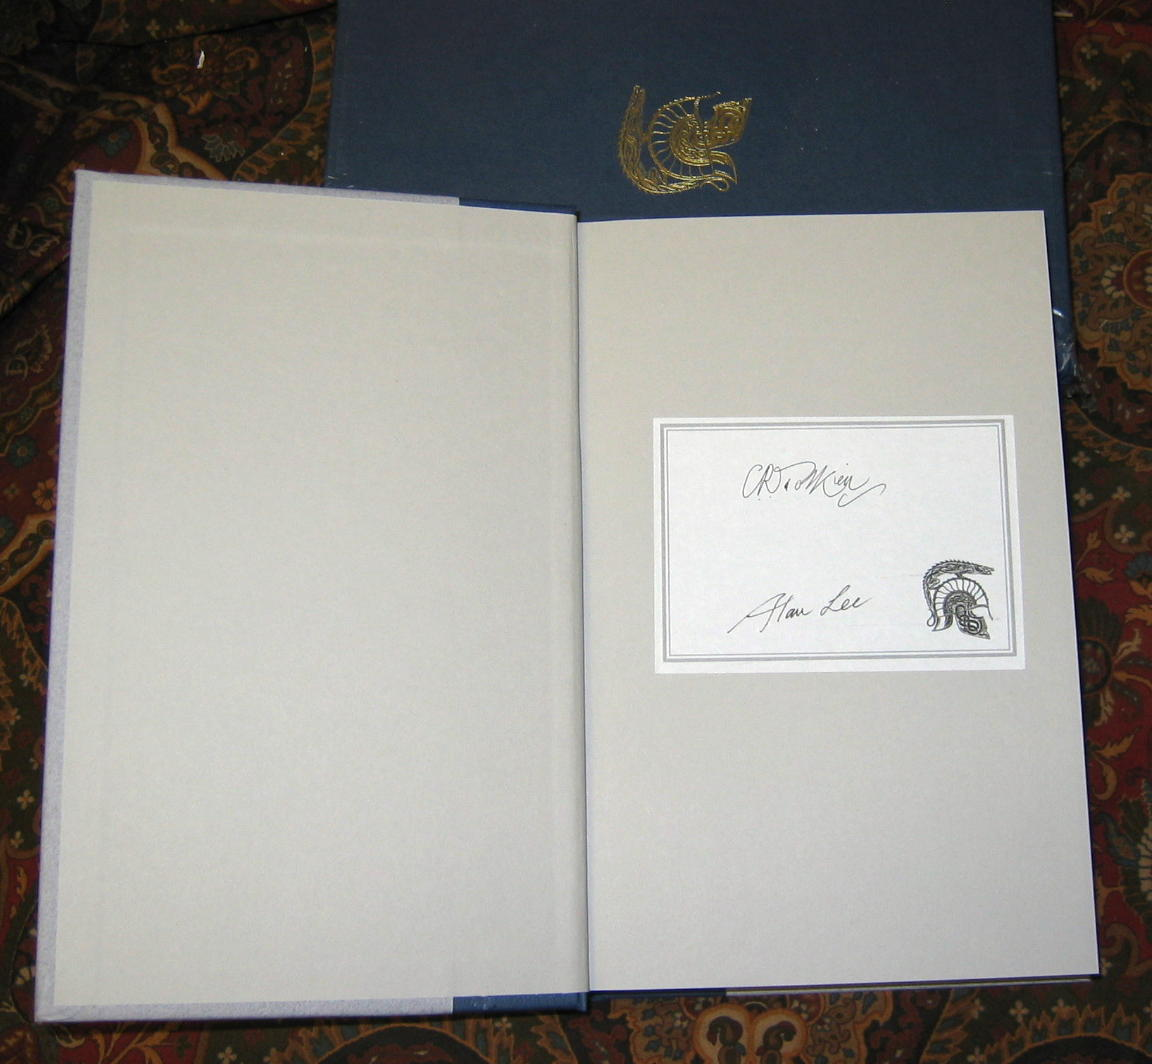 Pasting Bookplates Into Your Books